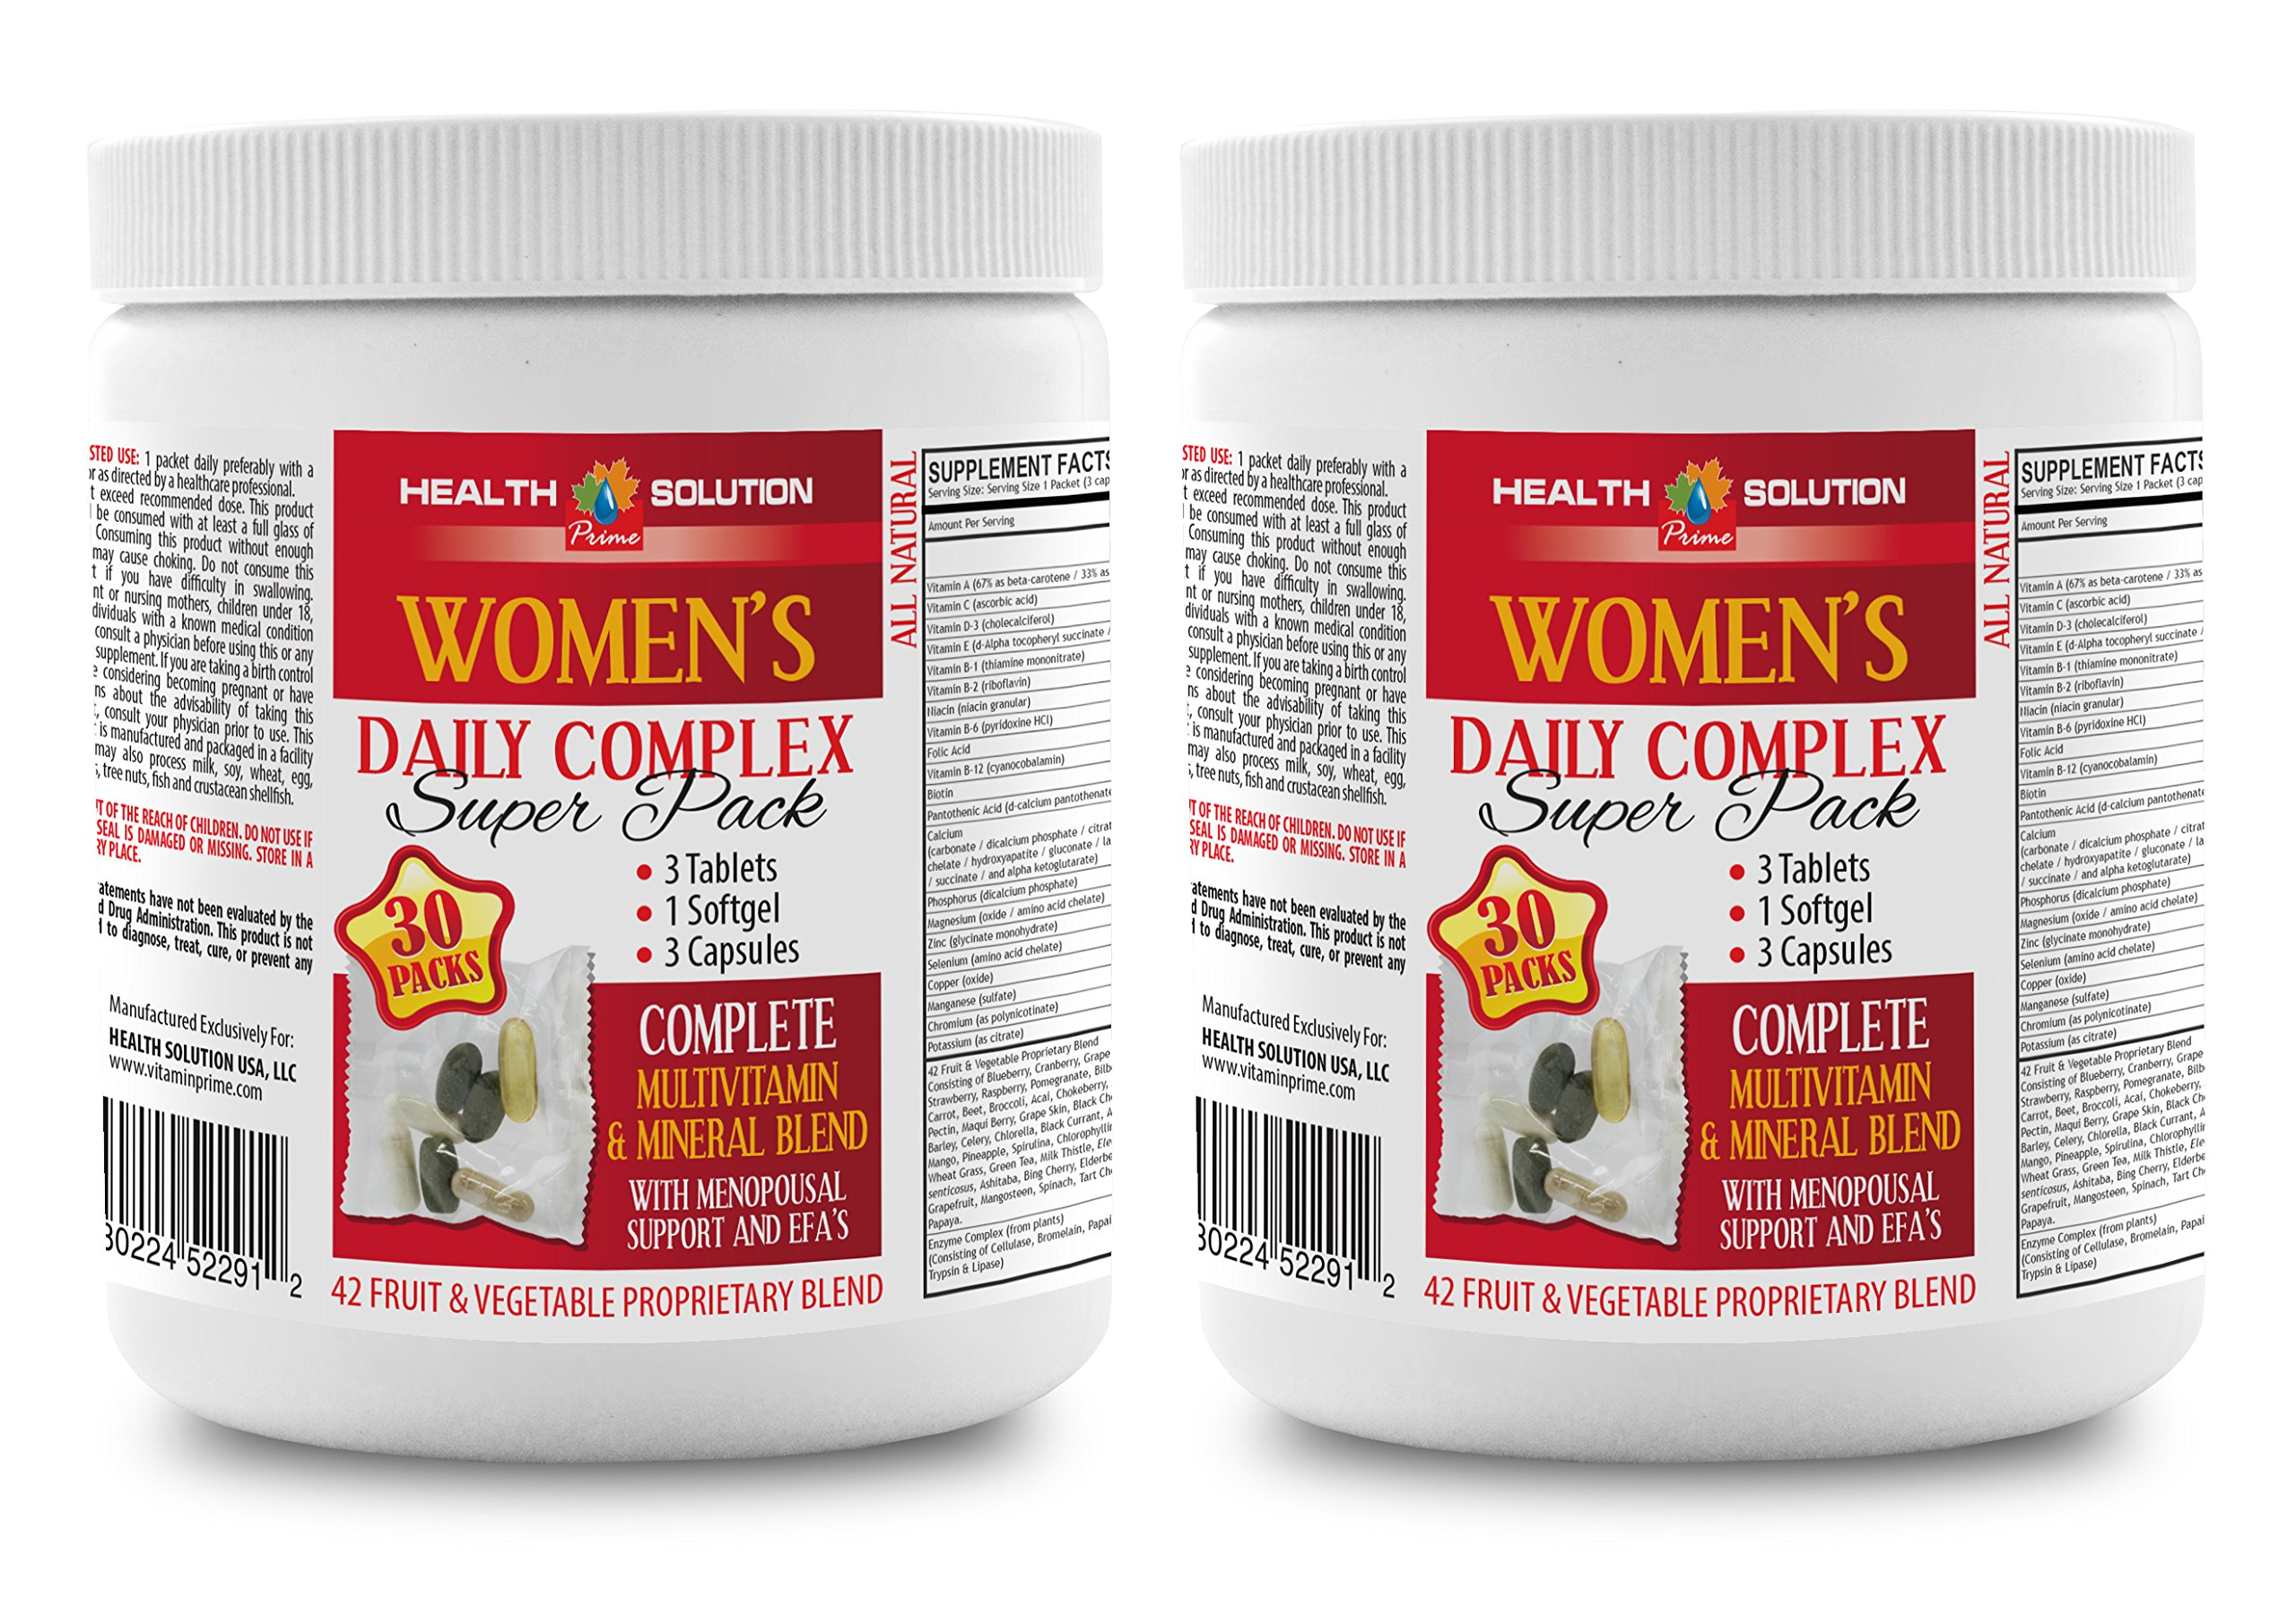 Women Vitamins Supplements - Women's Daily Complex - Super Pack - folic Acid and zinc for Women - 2 Cans 60 Packs (420 Pills)